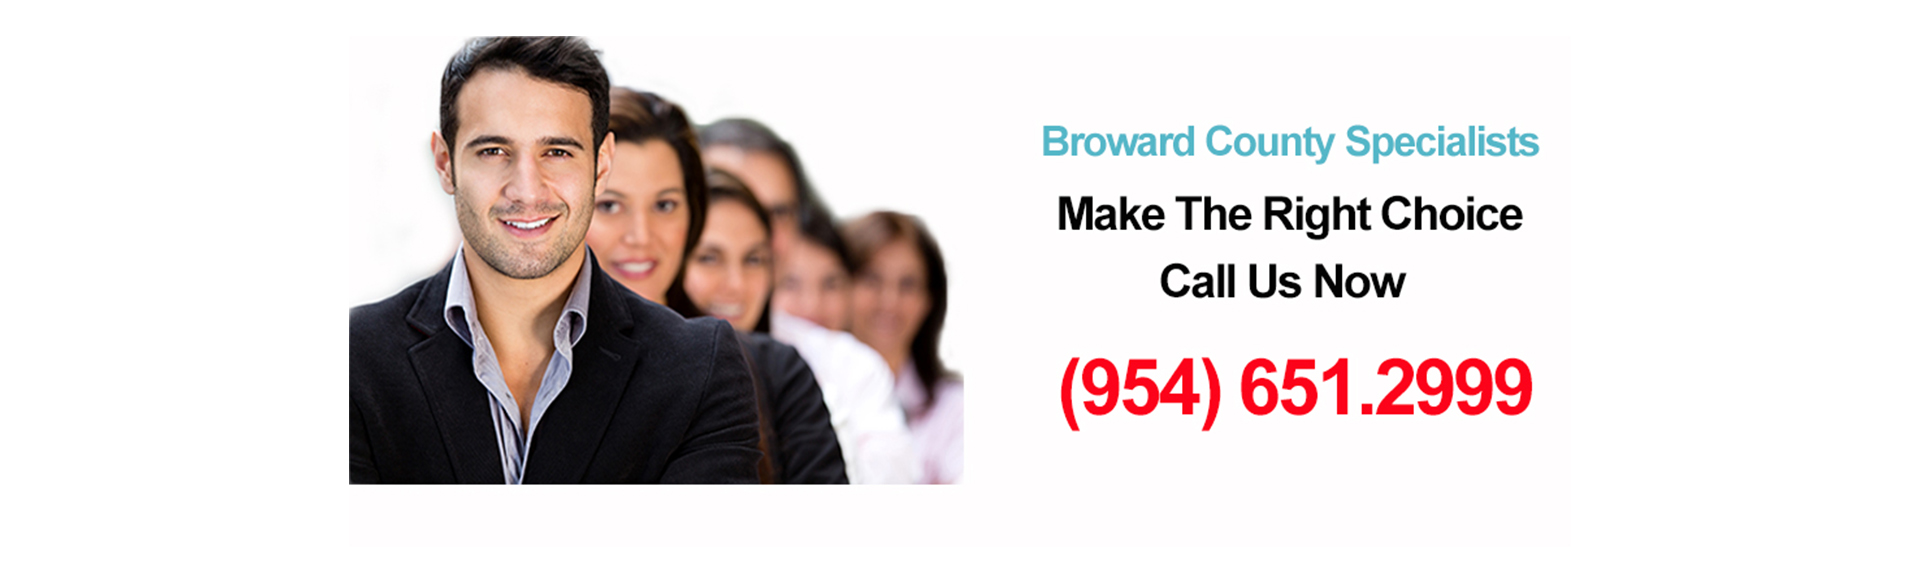 broward-county-specialists